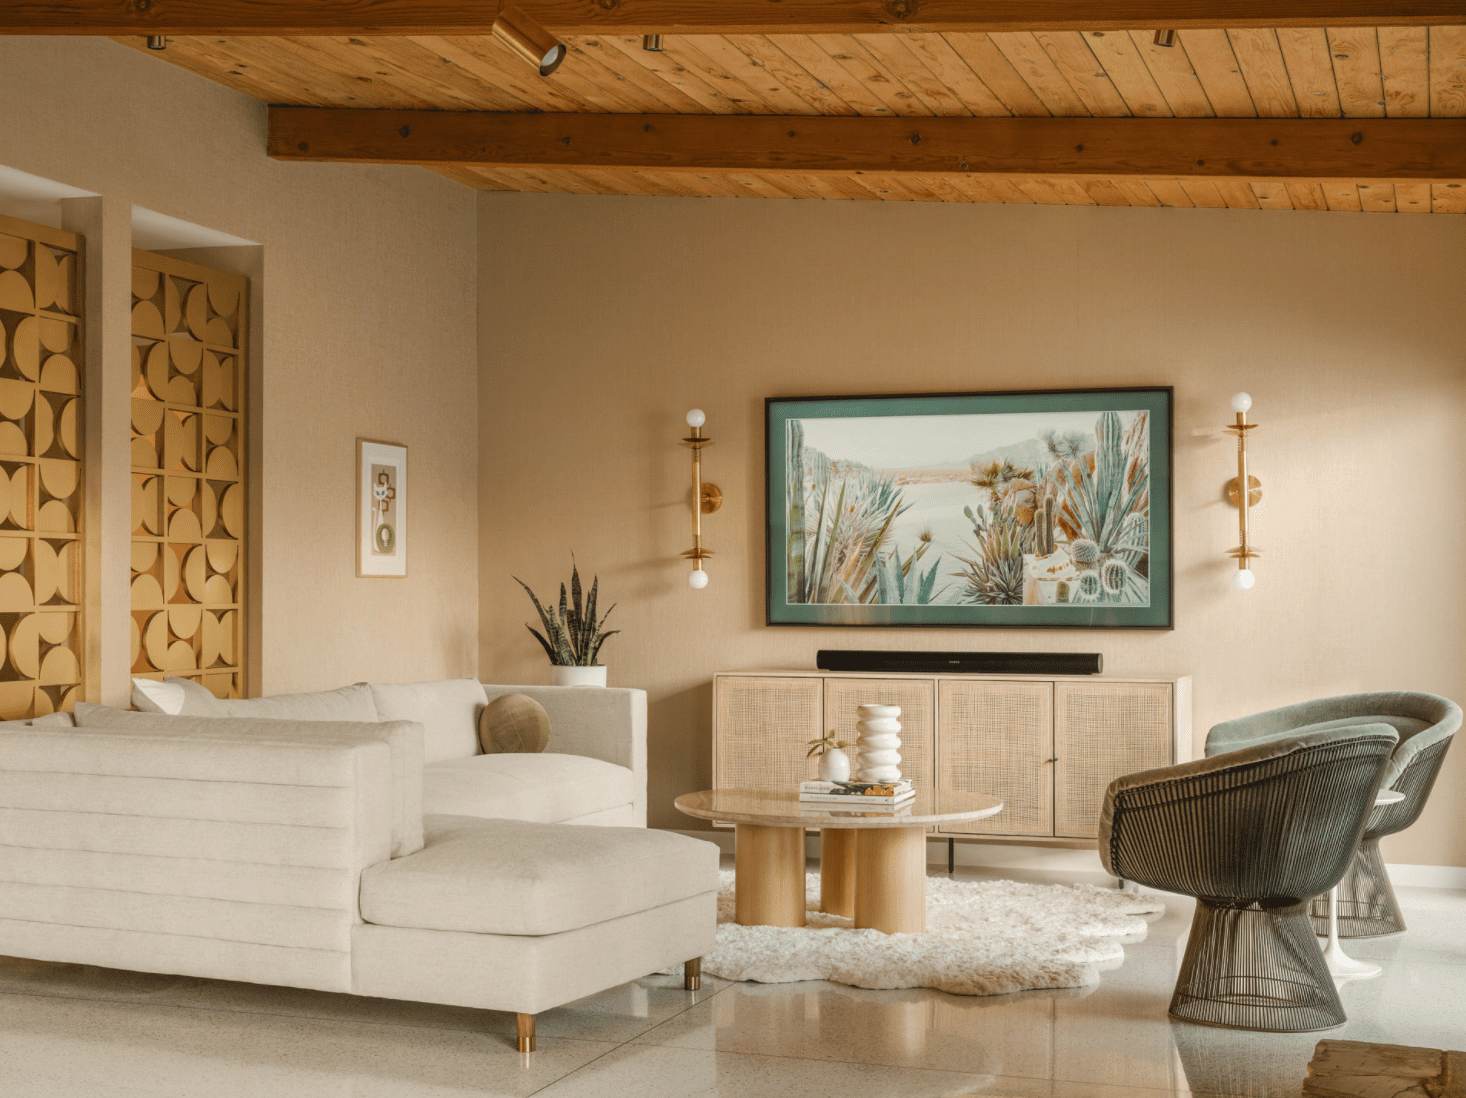 A living room with beige walls and sage furniture